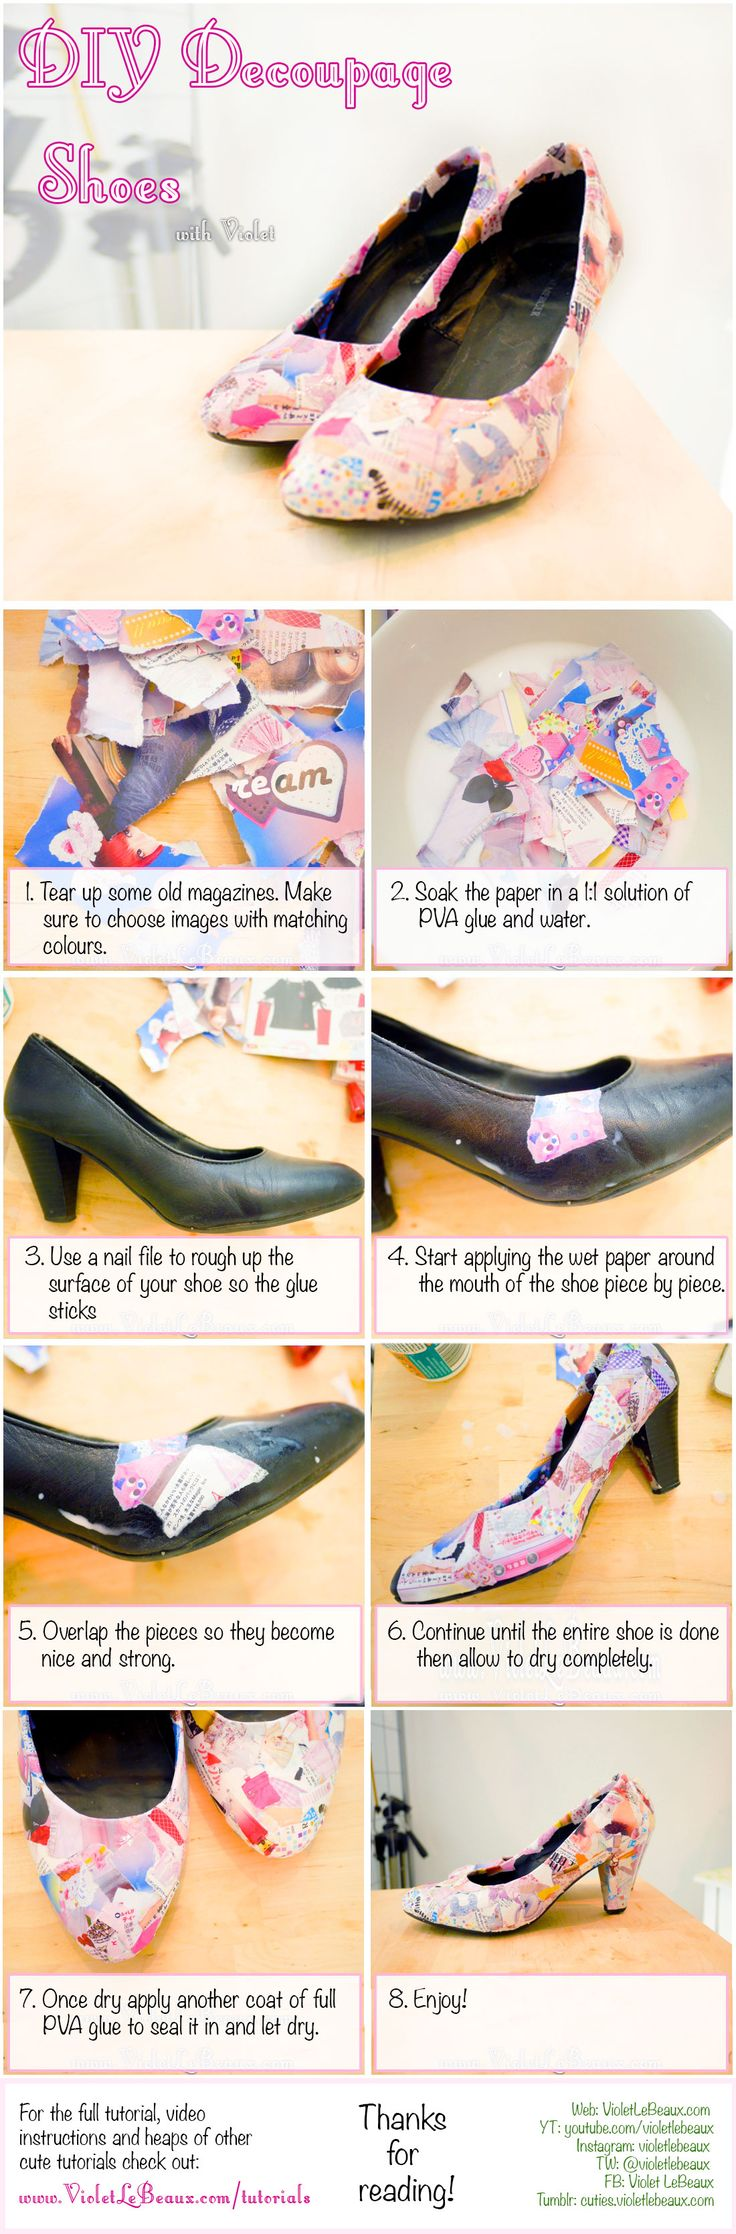 How to give boring shoes a make over into something more fun using magazines!  DIY Decoupage Shoes Tutorial | Violet LeBeaux- Cute Free Craft Tutorials